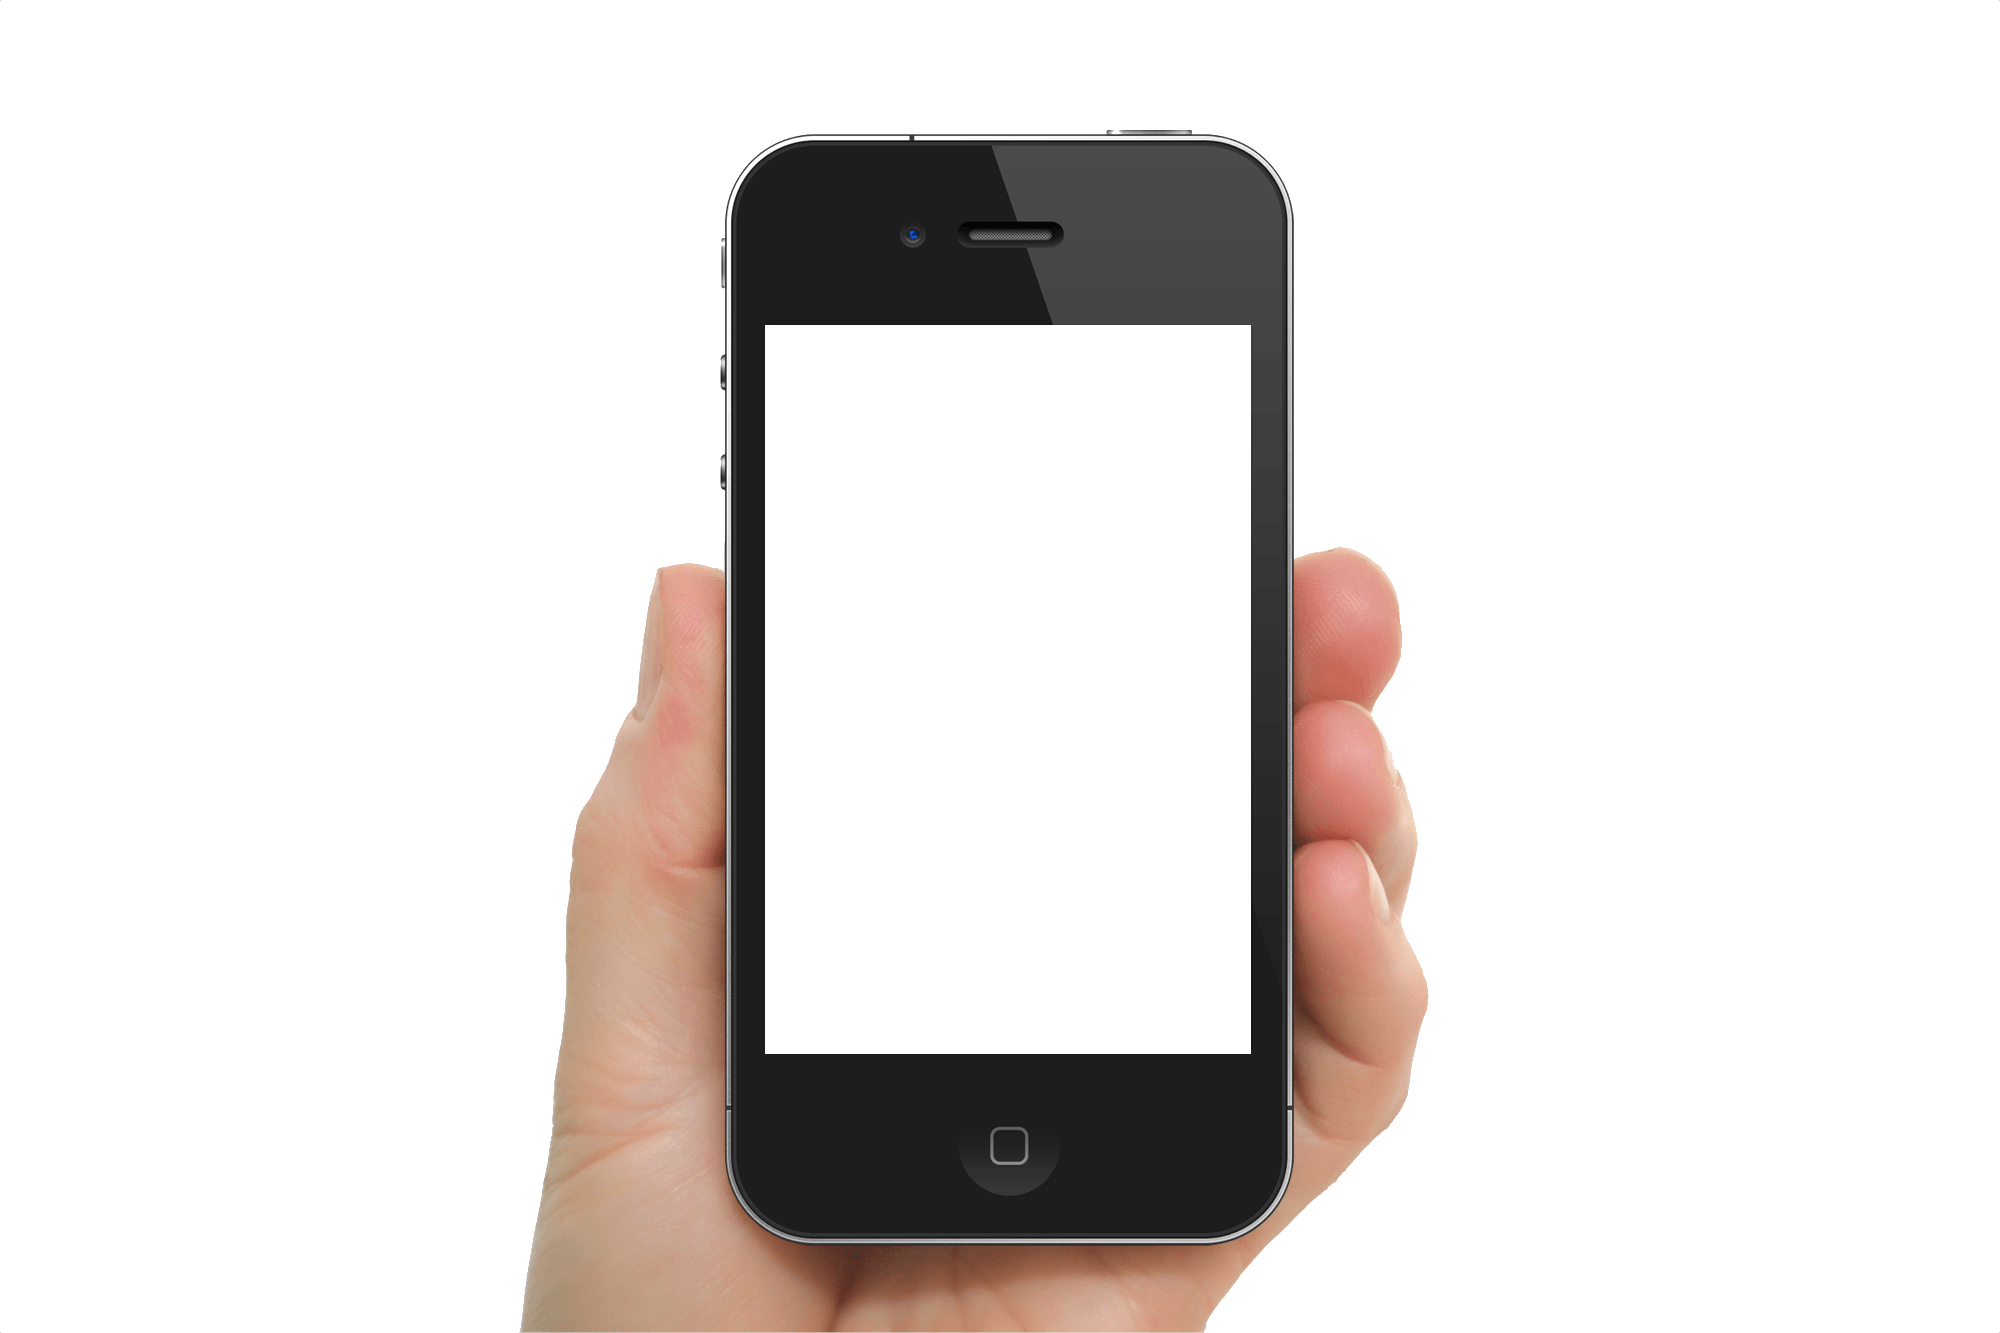 Black Iphone In Hand Transparent Png Image PNG Image